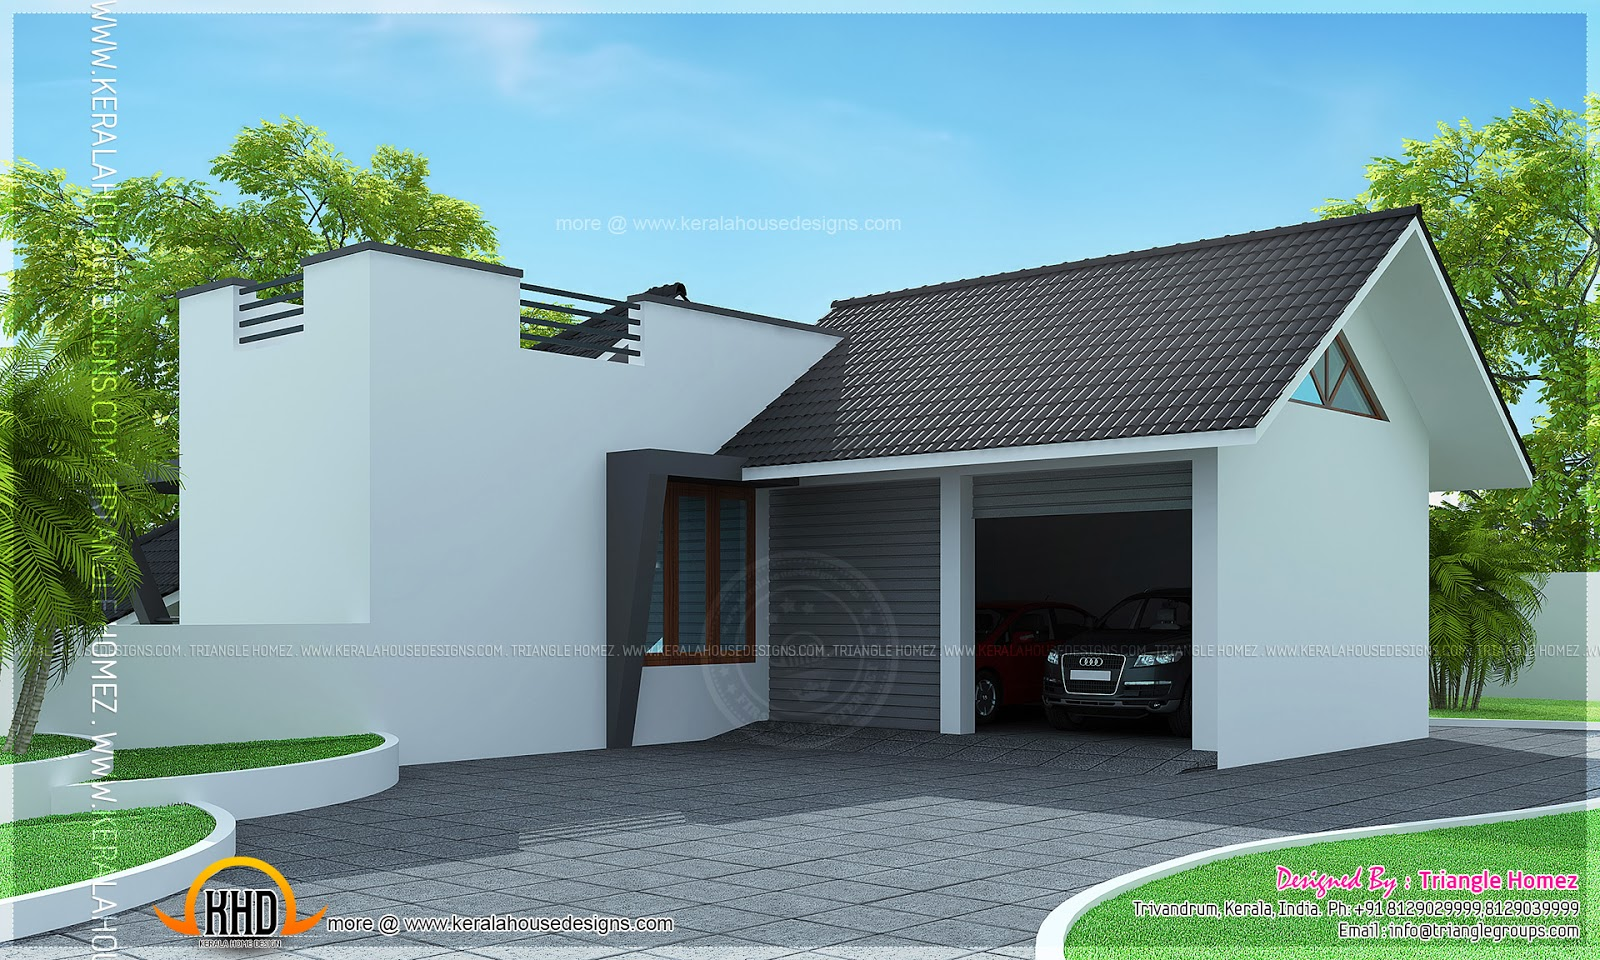 Two faced modern estate bungalow kerala home design and floor plans